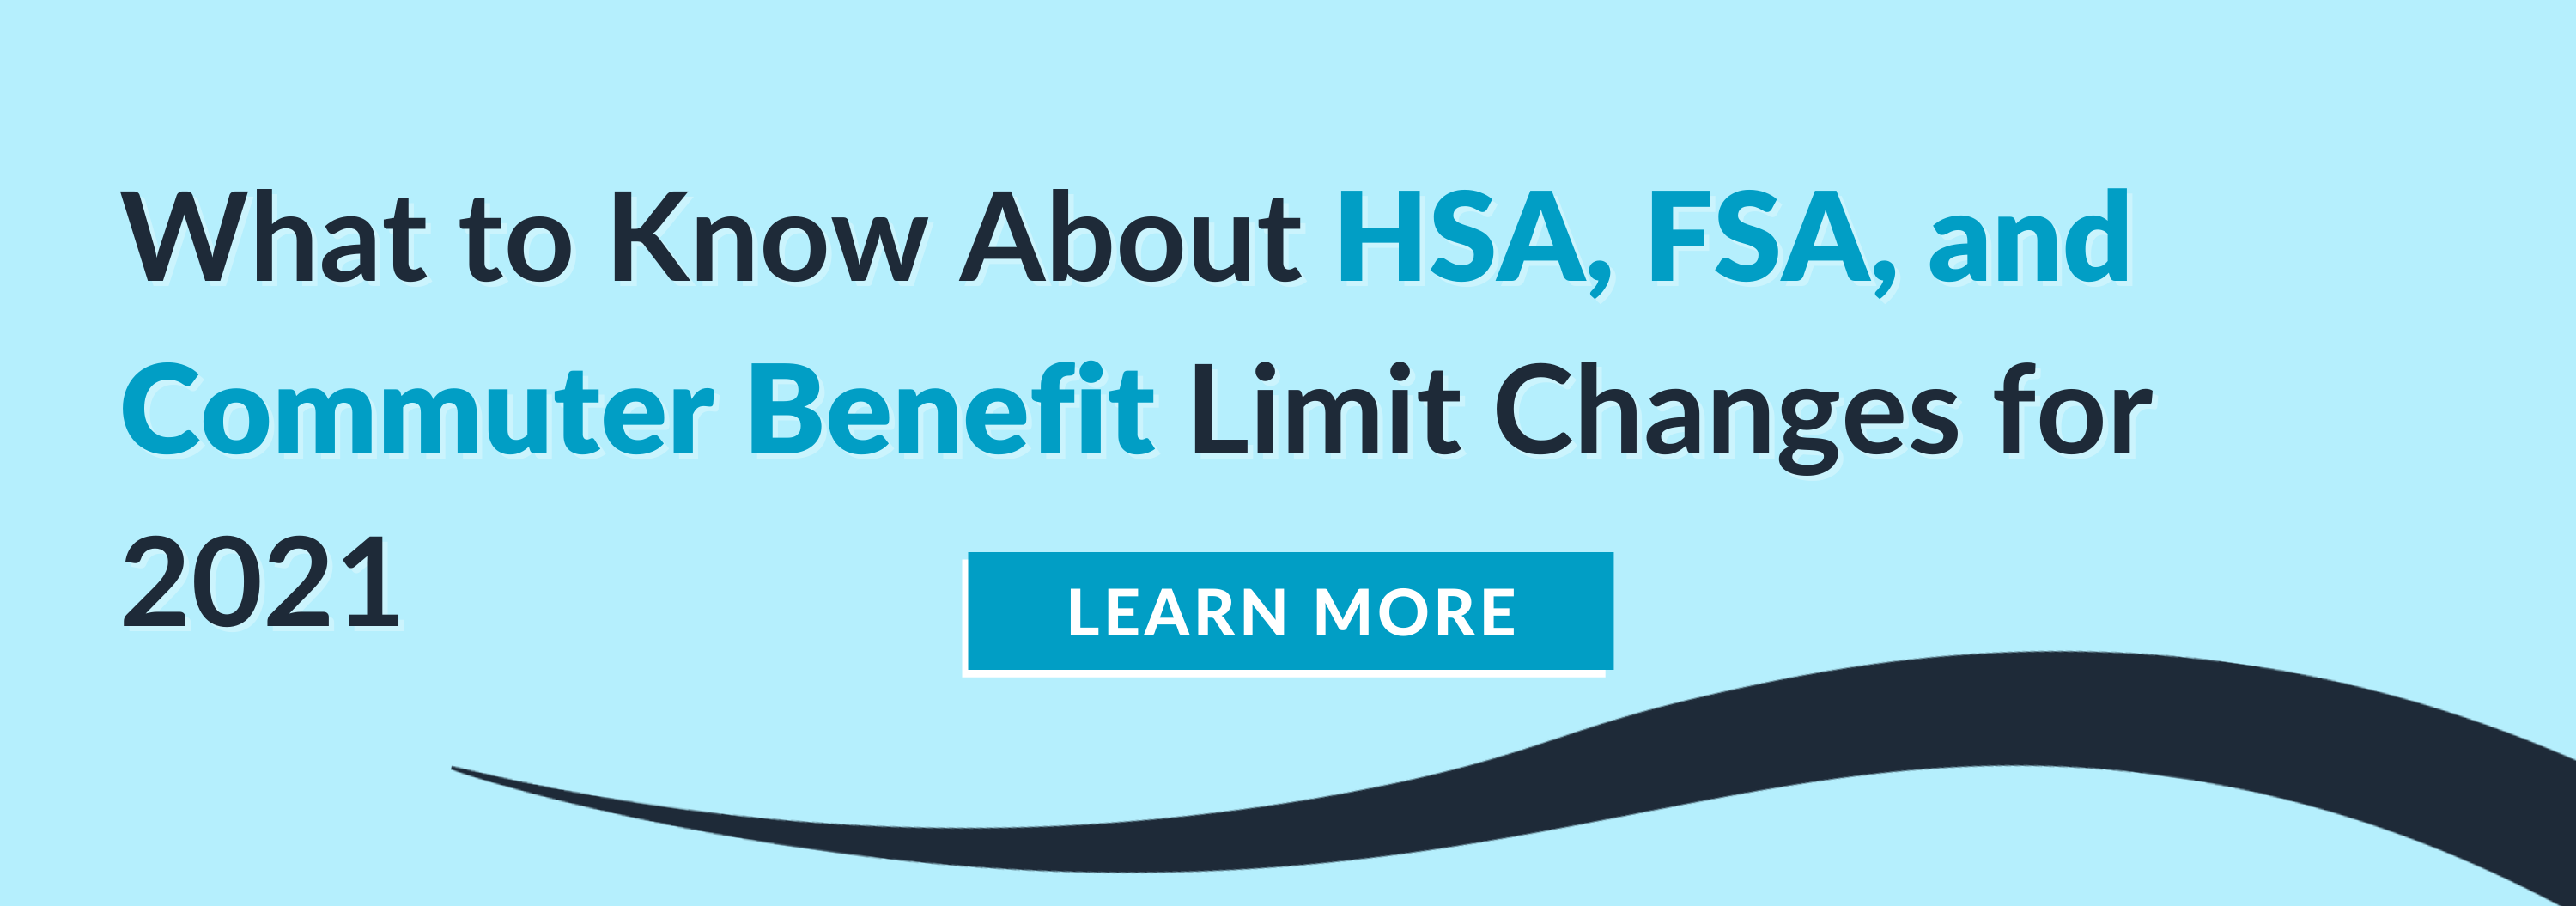 2021 HSA, FSA, Commuter Benefits Updates Blog CTA